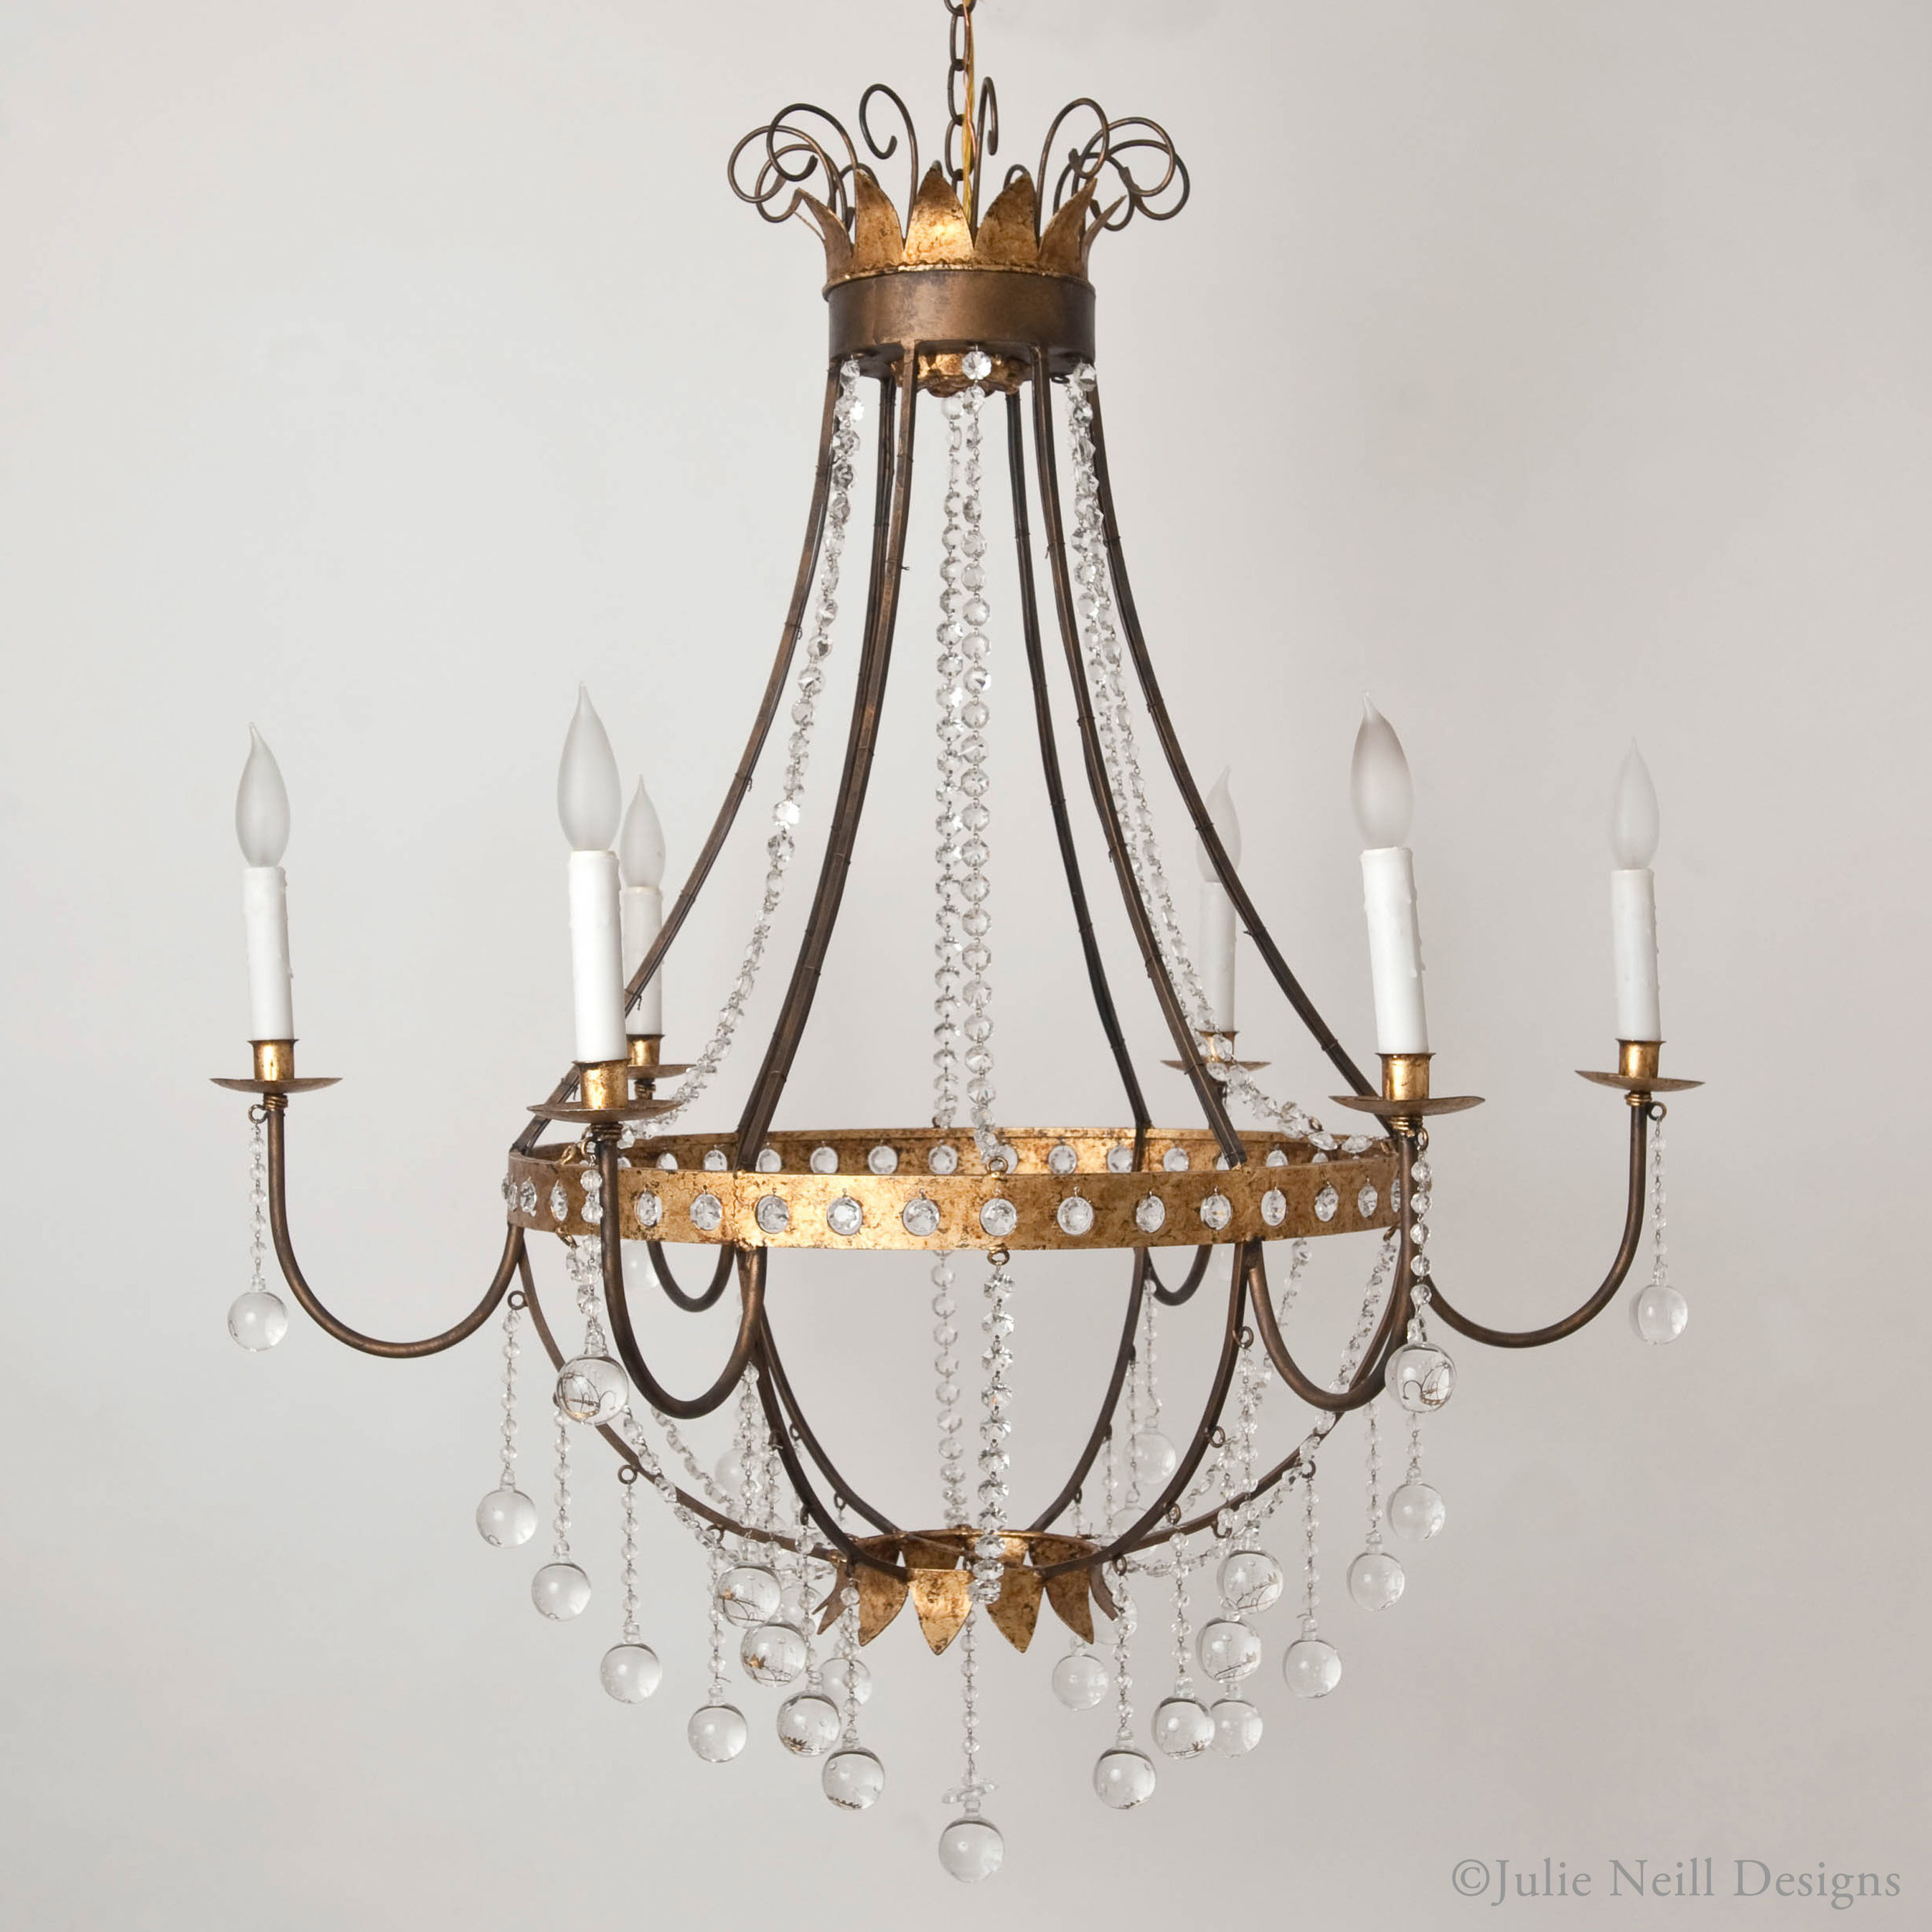 Bubbles_Chandelier_JulieNeillDesigns